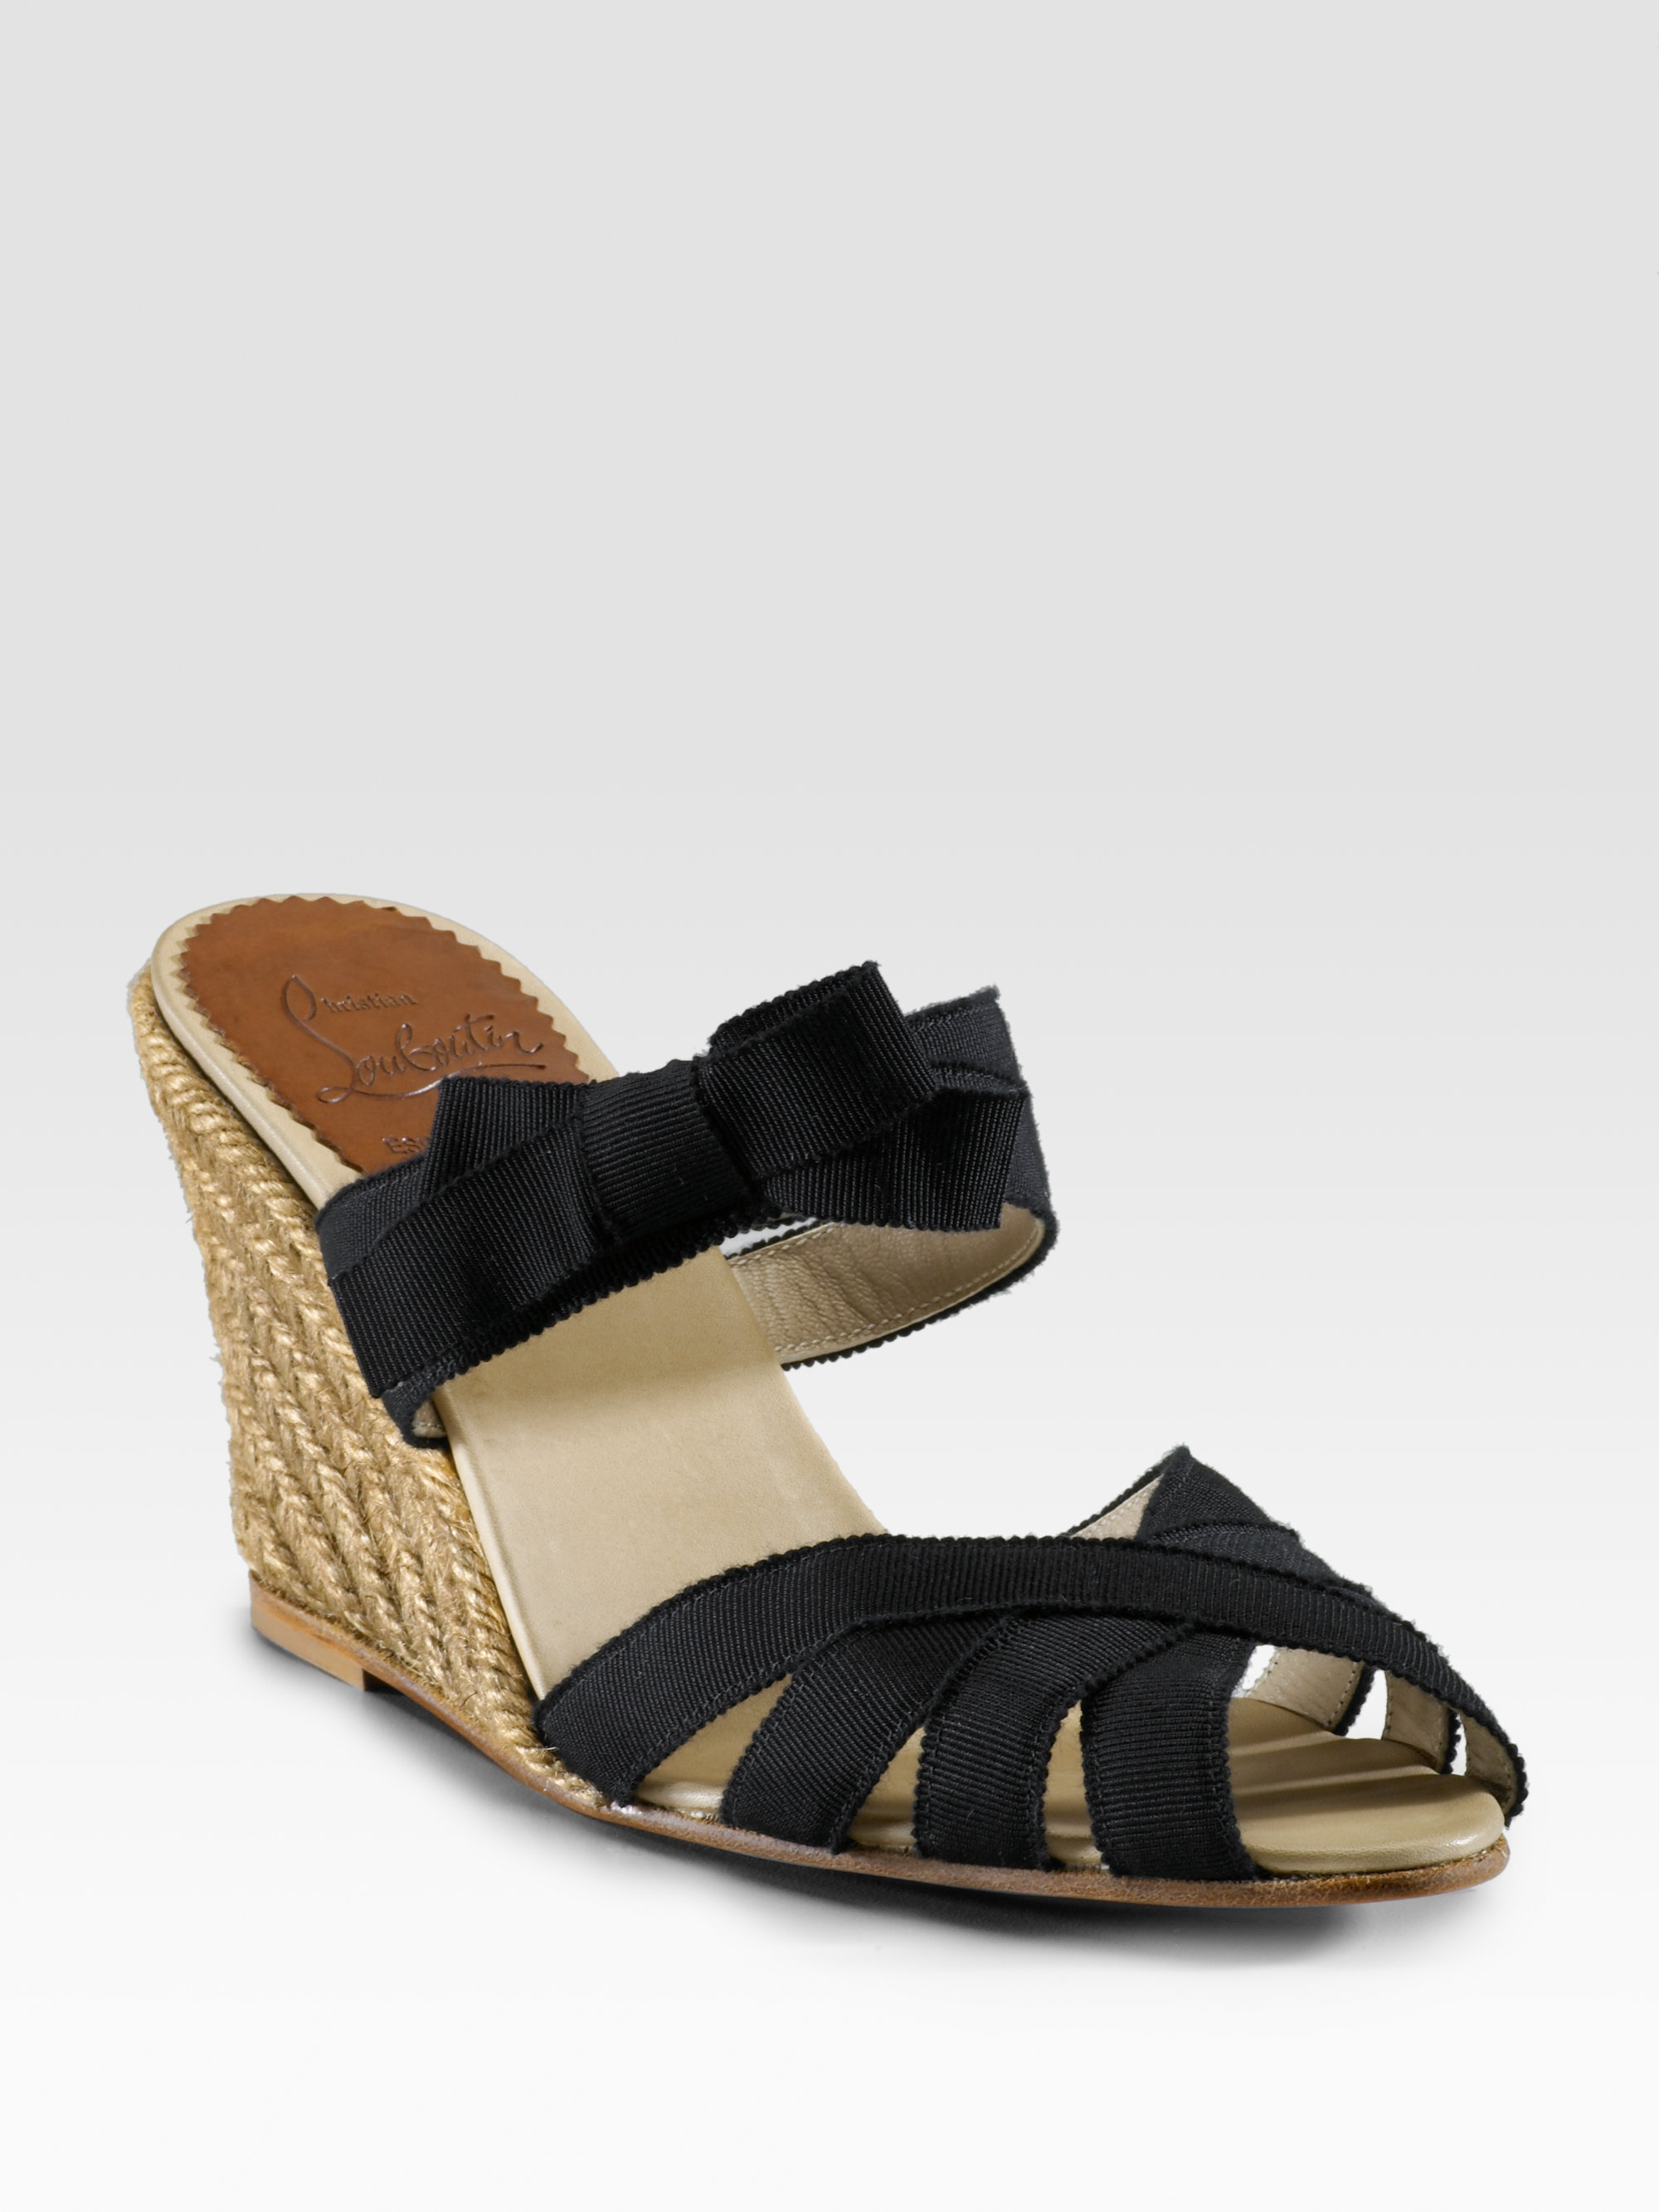 best loved 39c86 07cee Christian Louboutin Black Delfin Espadrille Wedges